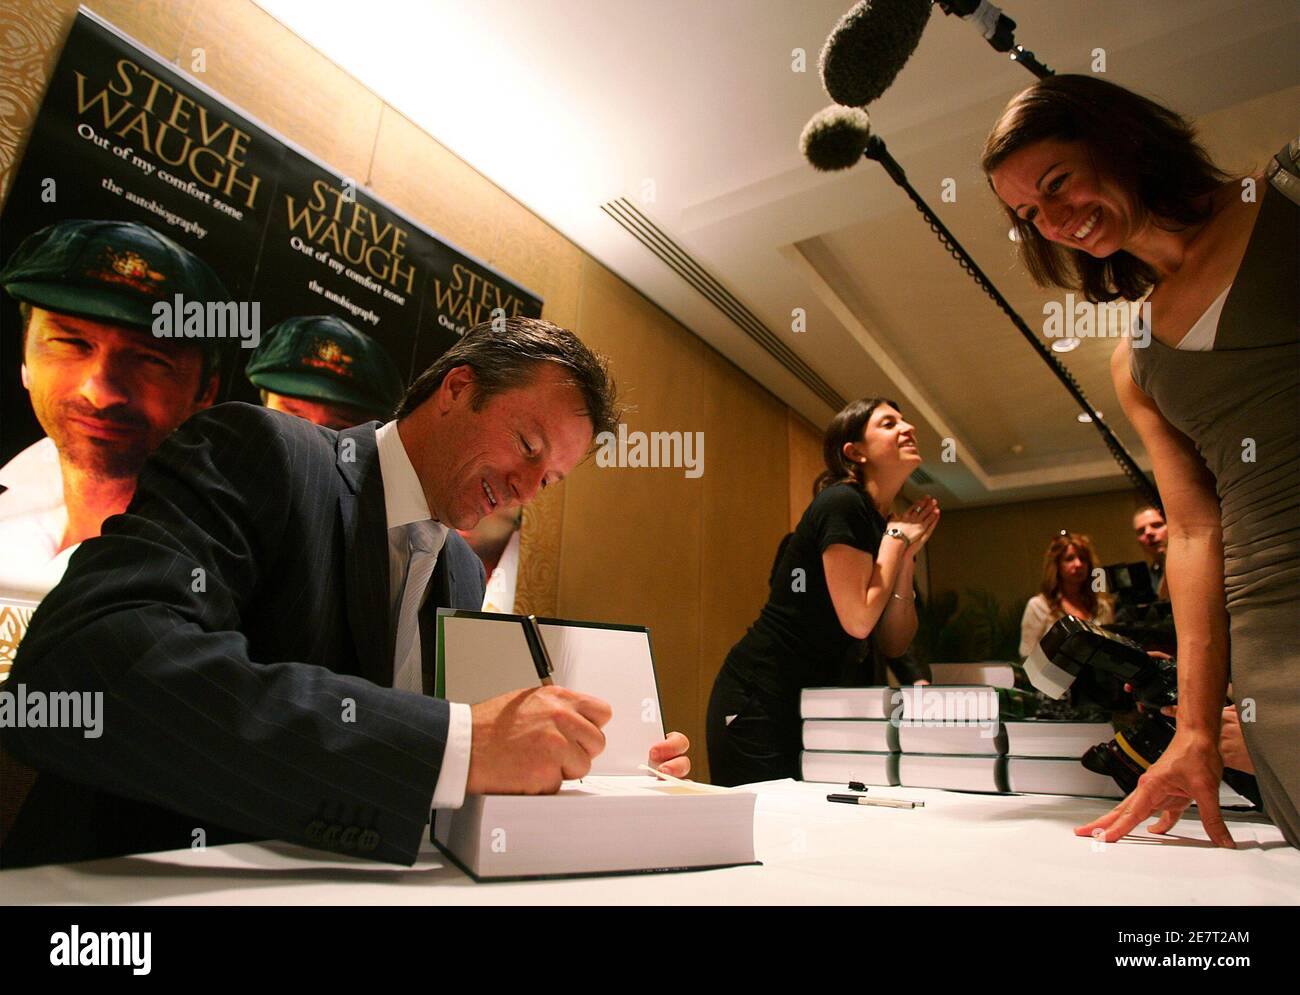 """Former Australian cricket team captain Steve Waugh signs a copy of his autobiography for a cricket fan in Sydney October 23, 2005. Waugh, Australia's Test cricket captain from 1999 to 2004, has penned a book entitled """"Out of My Comfort Zone"""" in which he reveals insights into life on and off the field during the time he headed a dominant team. REUTERS/Will Burgess Stock Photo"""